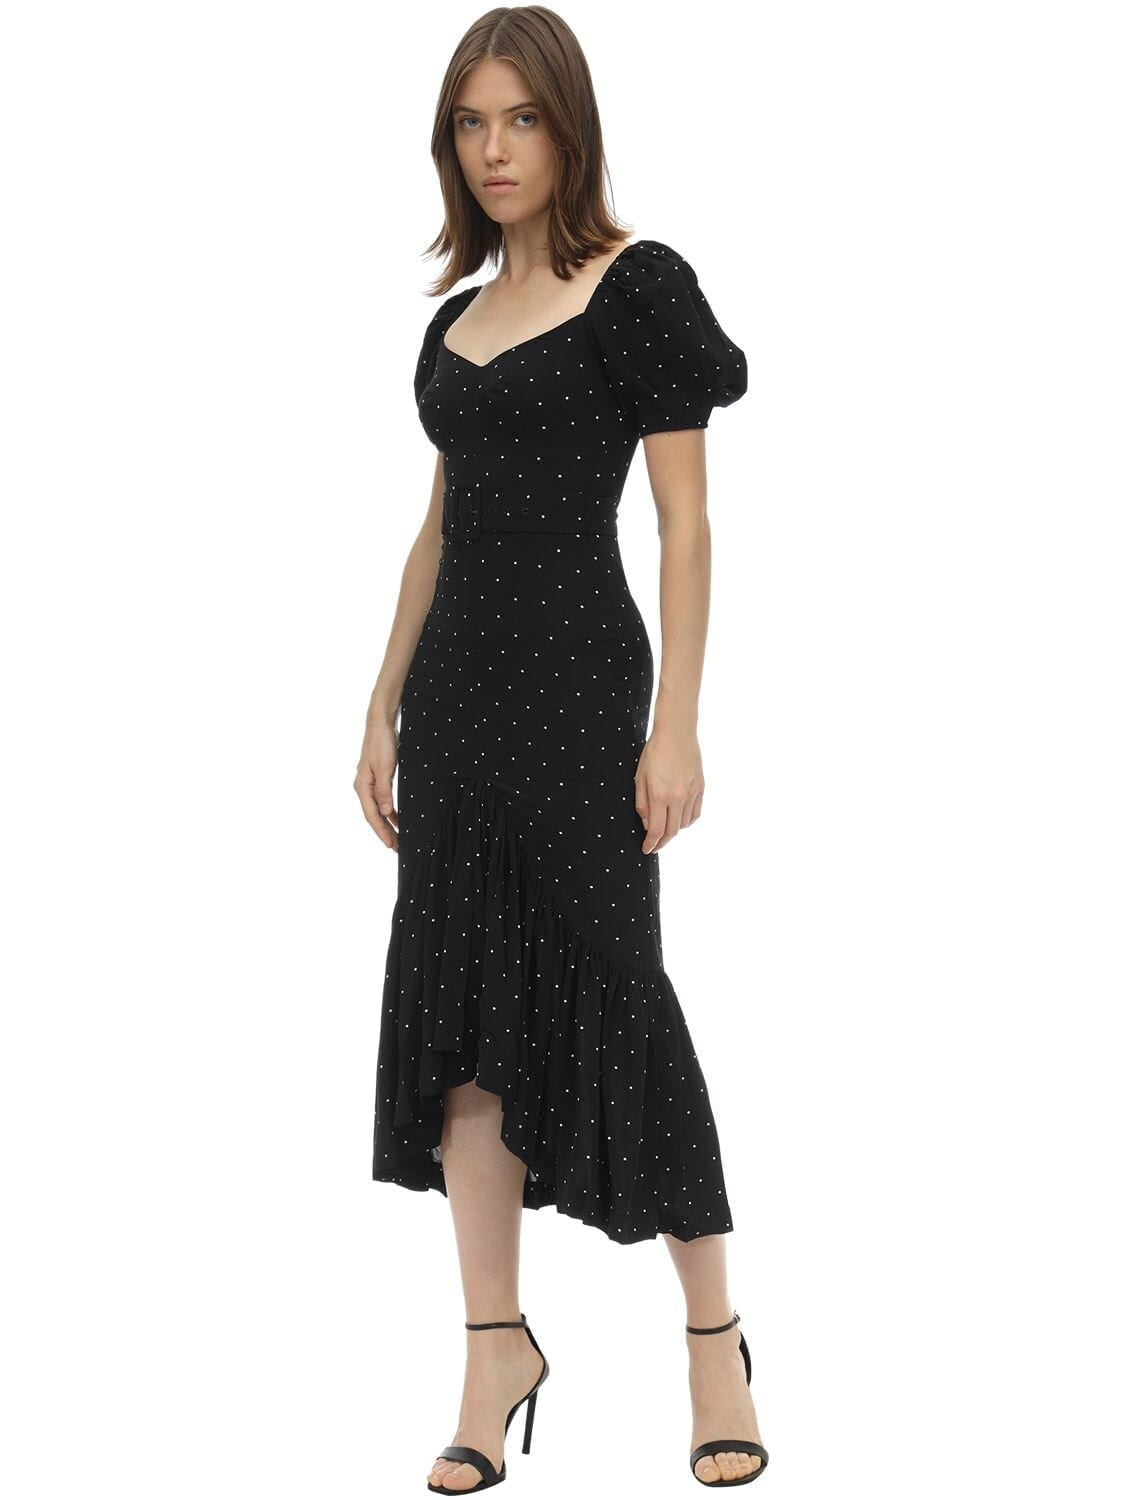 ALICE MCCALL Polka Dot Printed Midi Dress